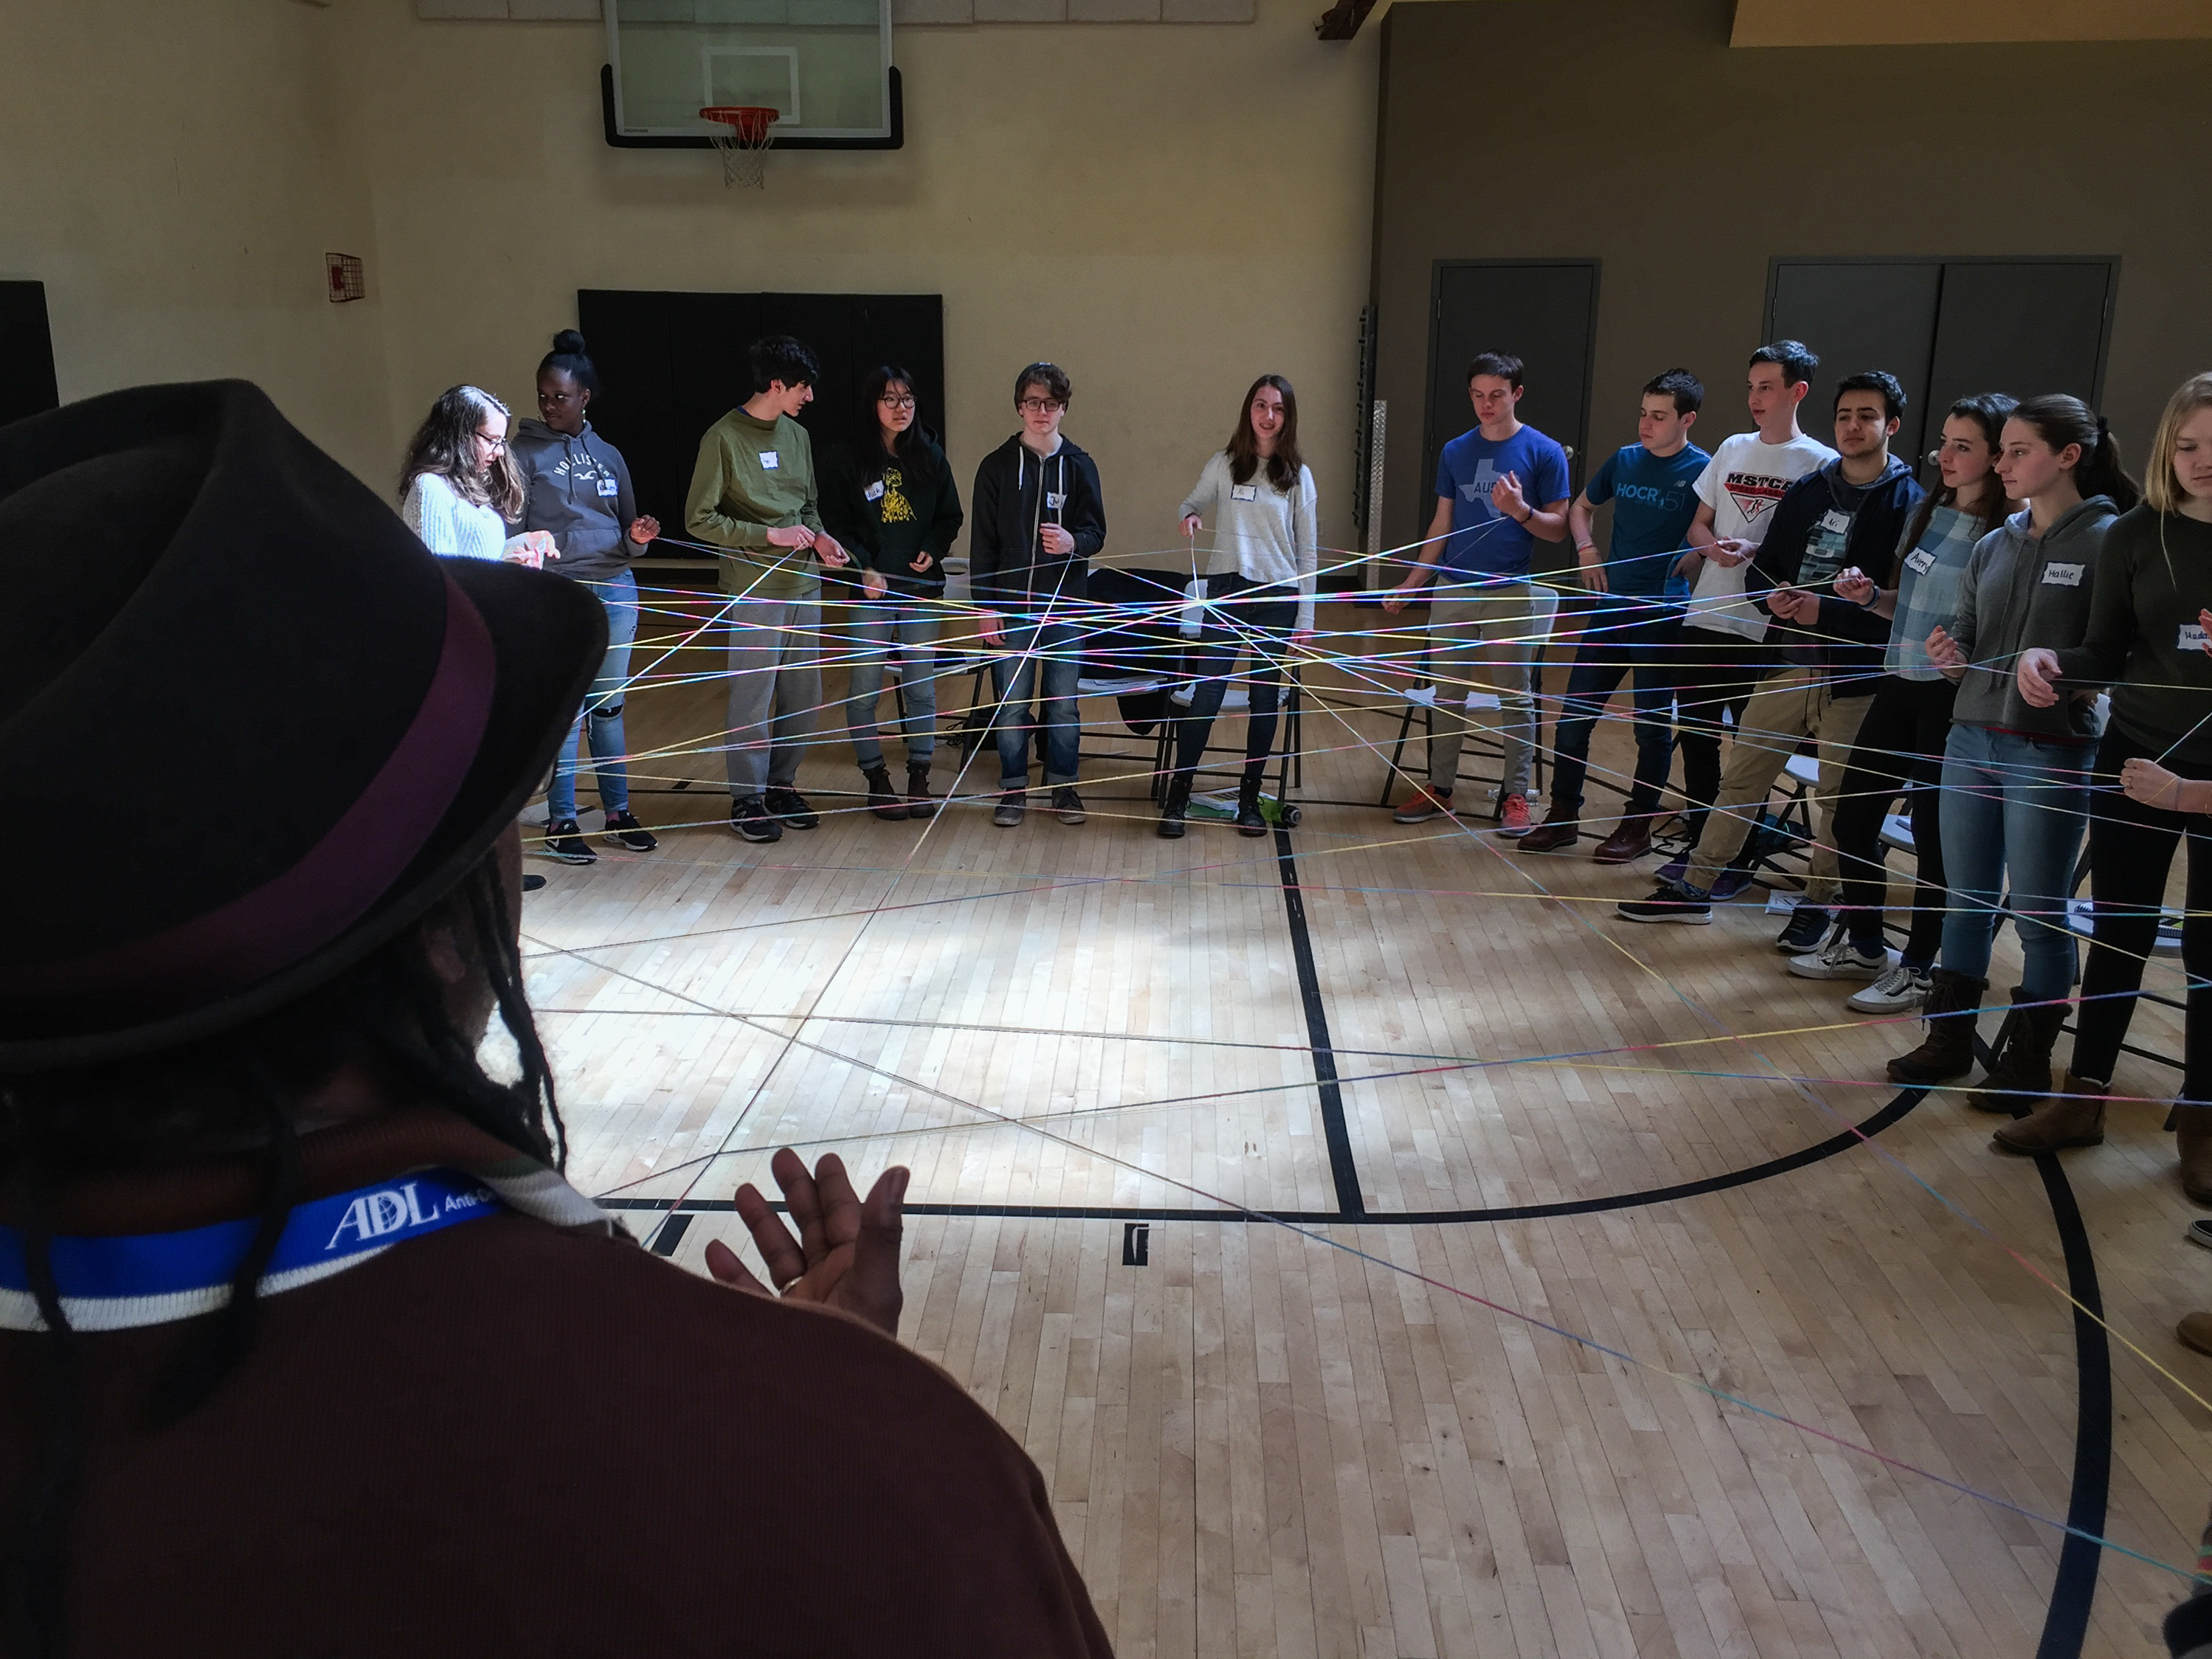 Rob Jones, a training consultant with the Anti-Defamation League, leads Brookline High School students in building a 'web of unity.'     (Tovia Smith /NPR)